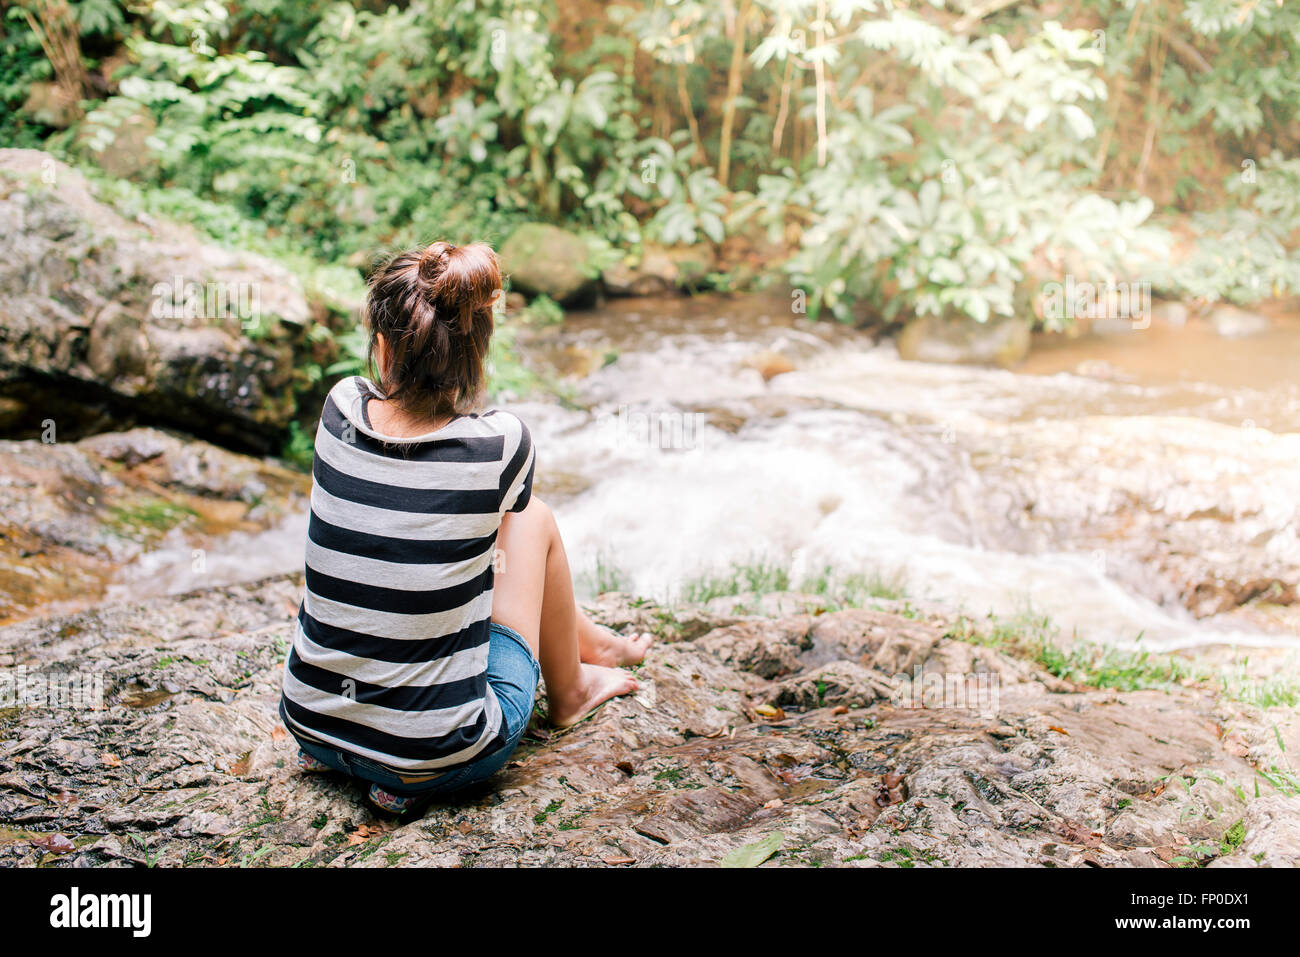 Relaxing concept, Woman sitting nearby waterfall. Film tone - Stock Image